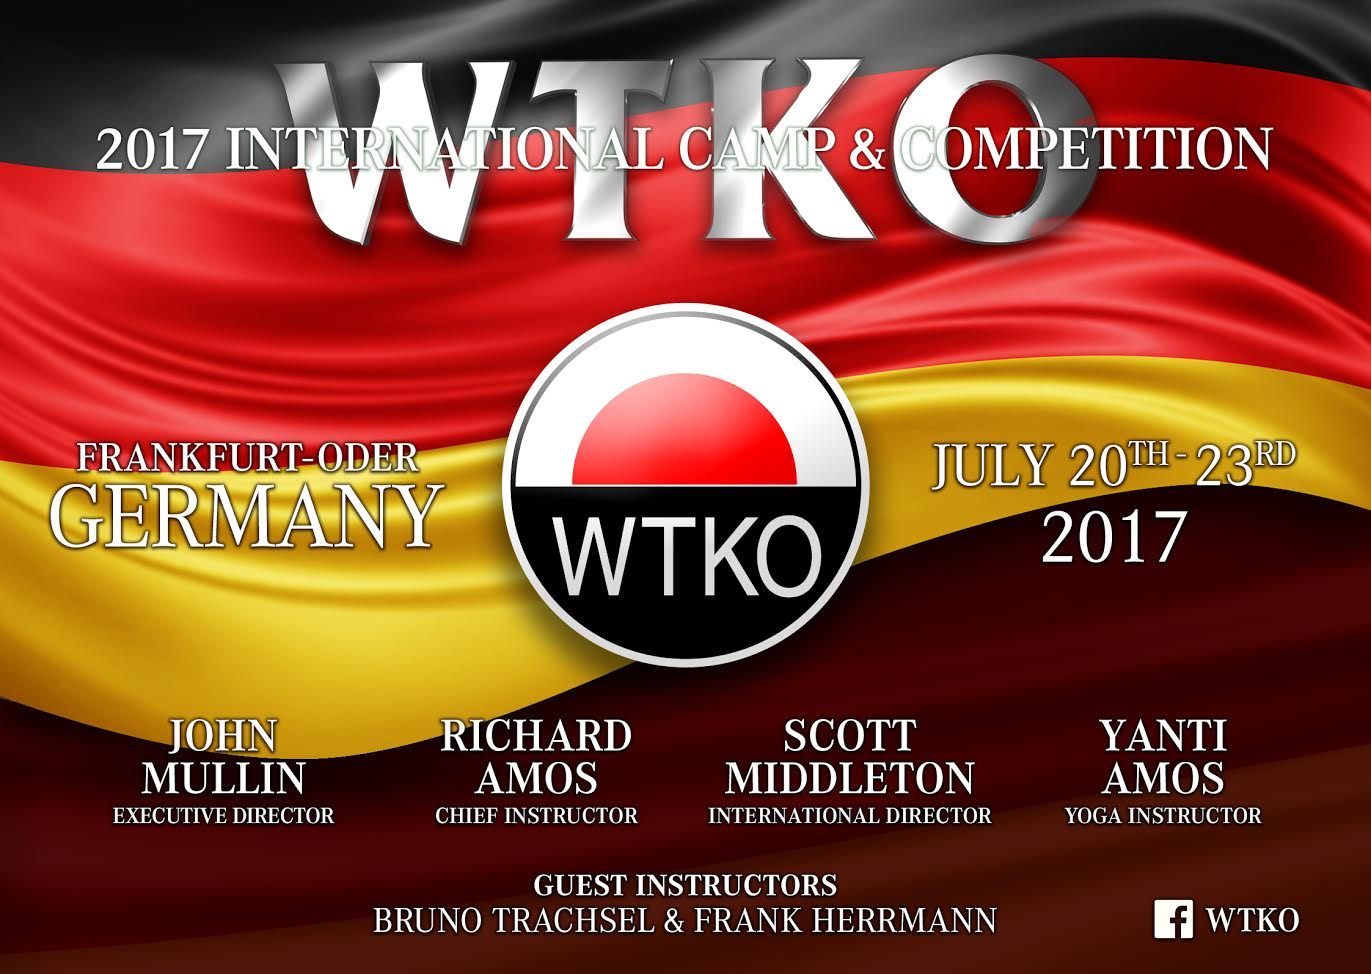 2017 WTKO International Camp & Competition